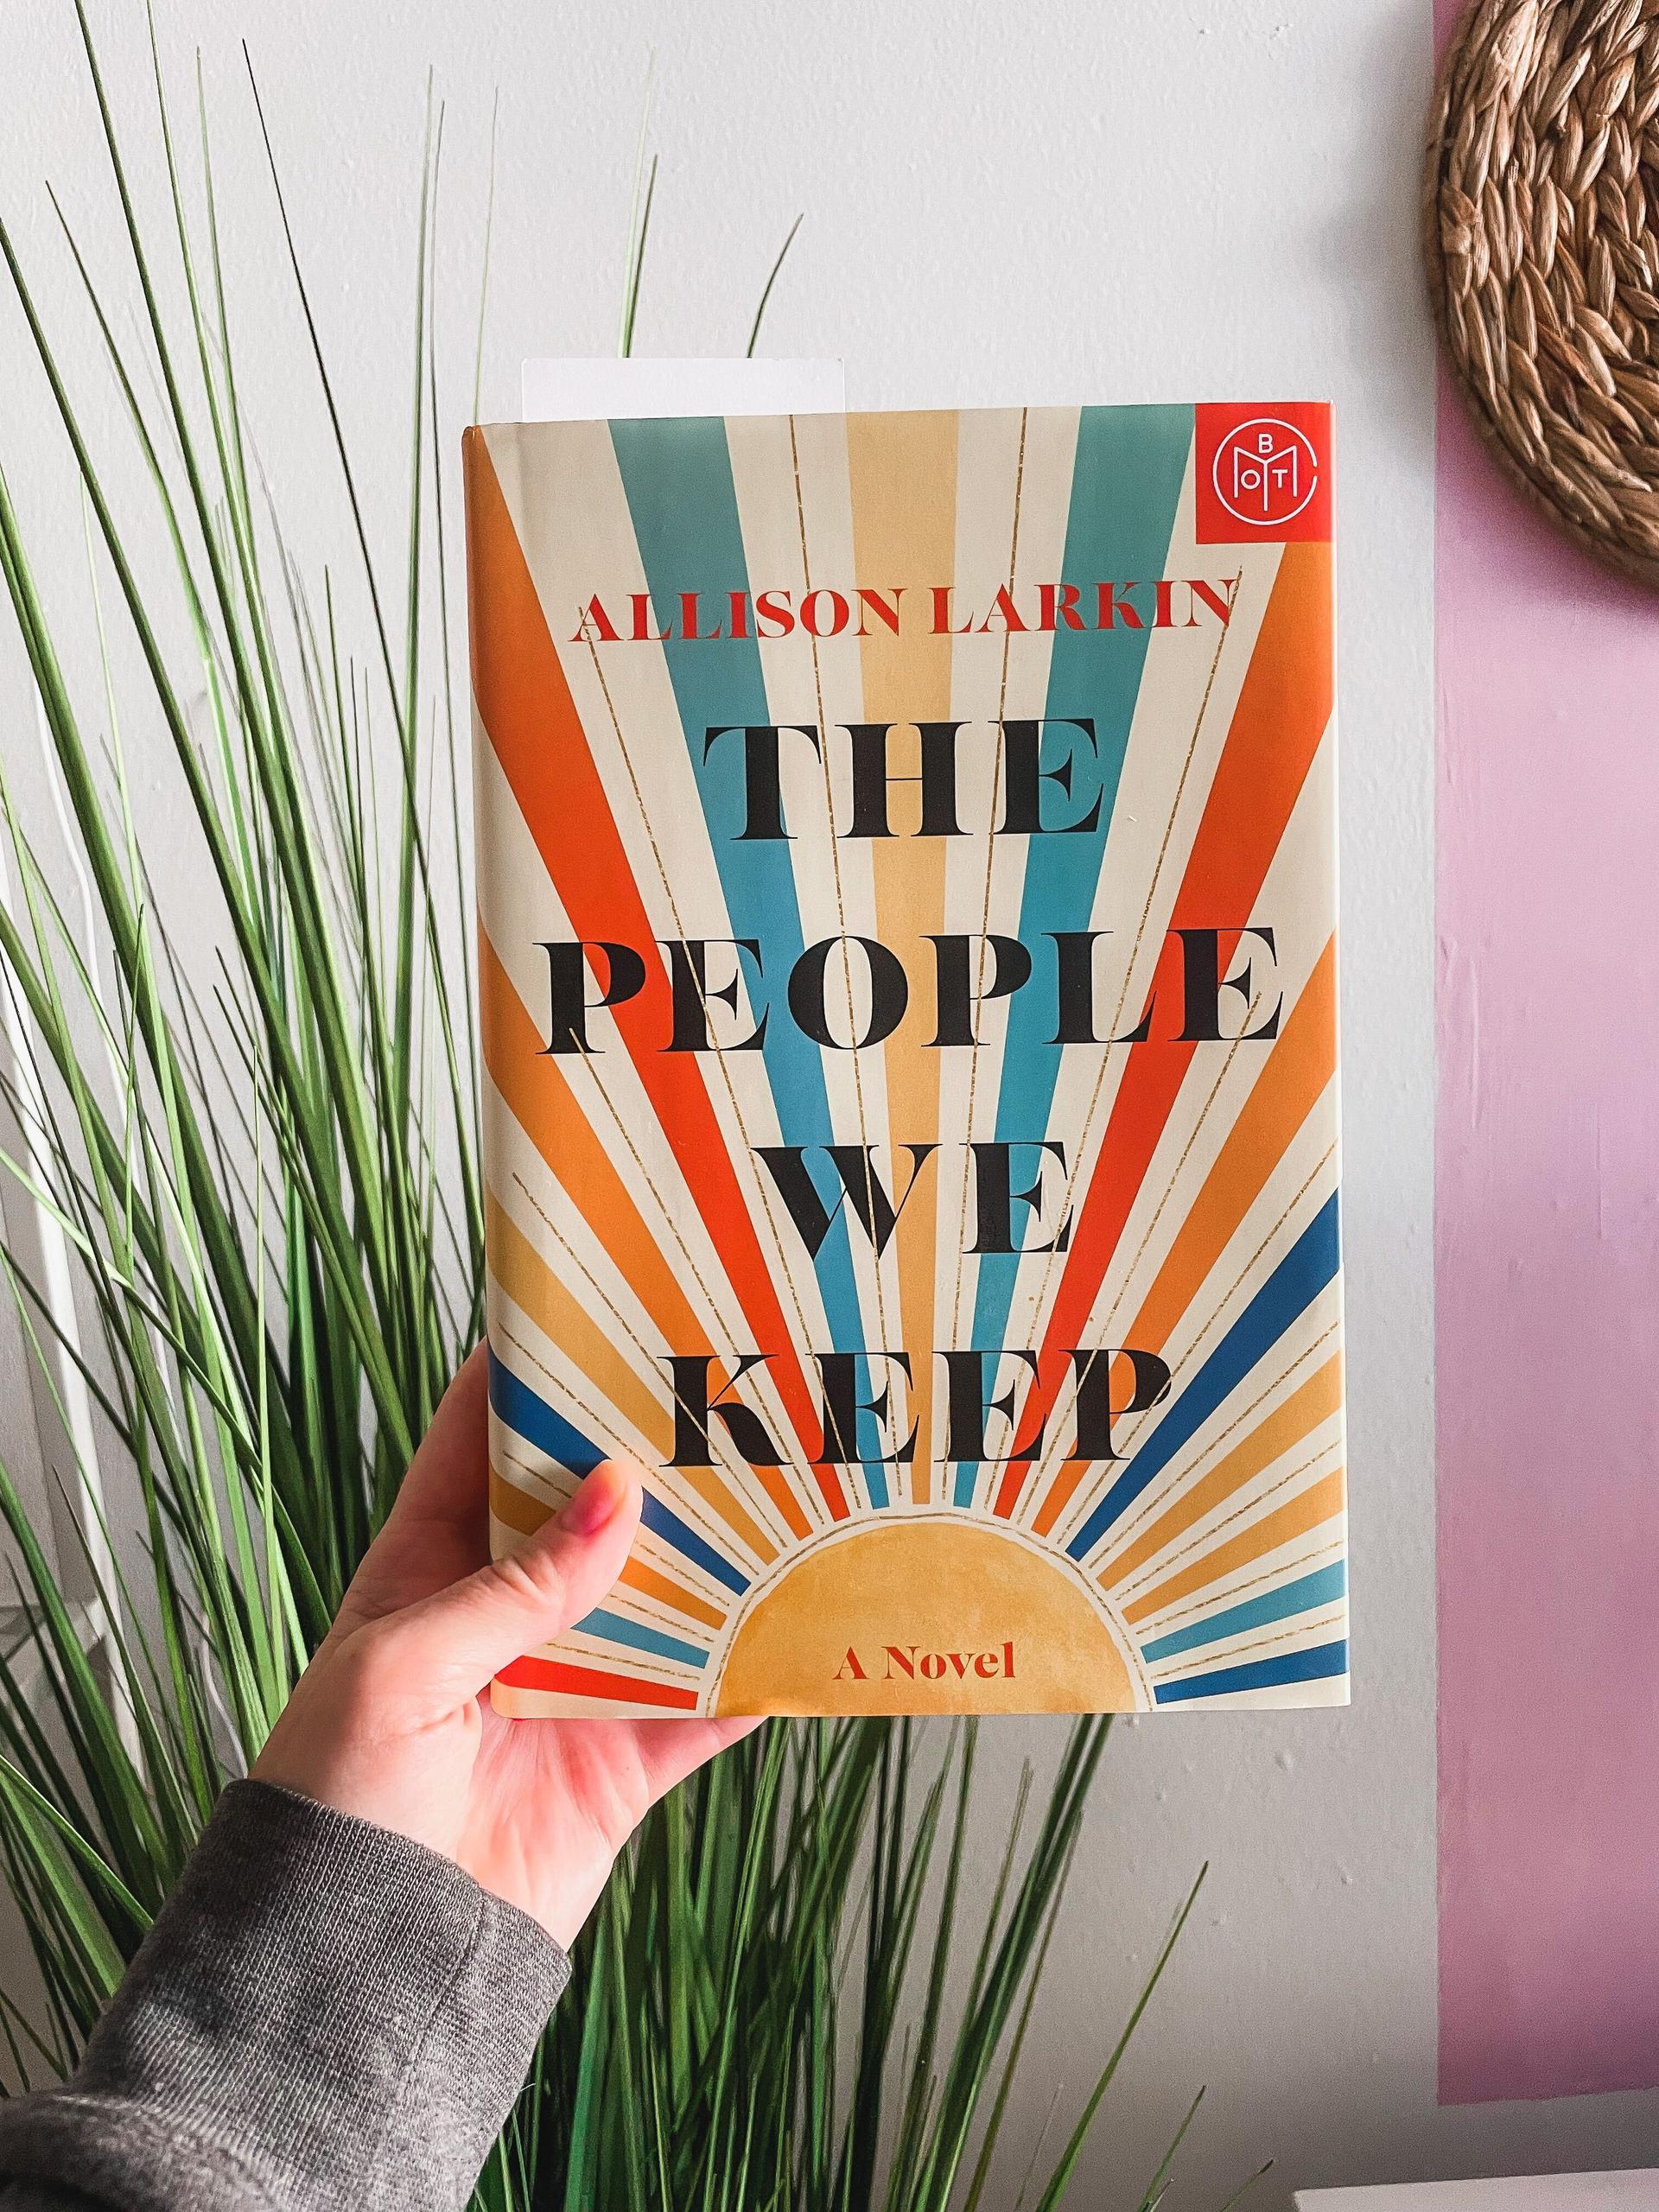 a hand holds a copy of the book against a blank wall next to a spiky plant